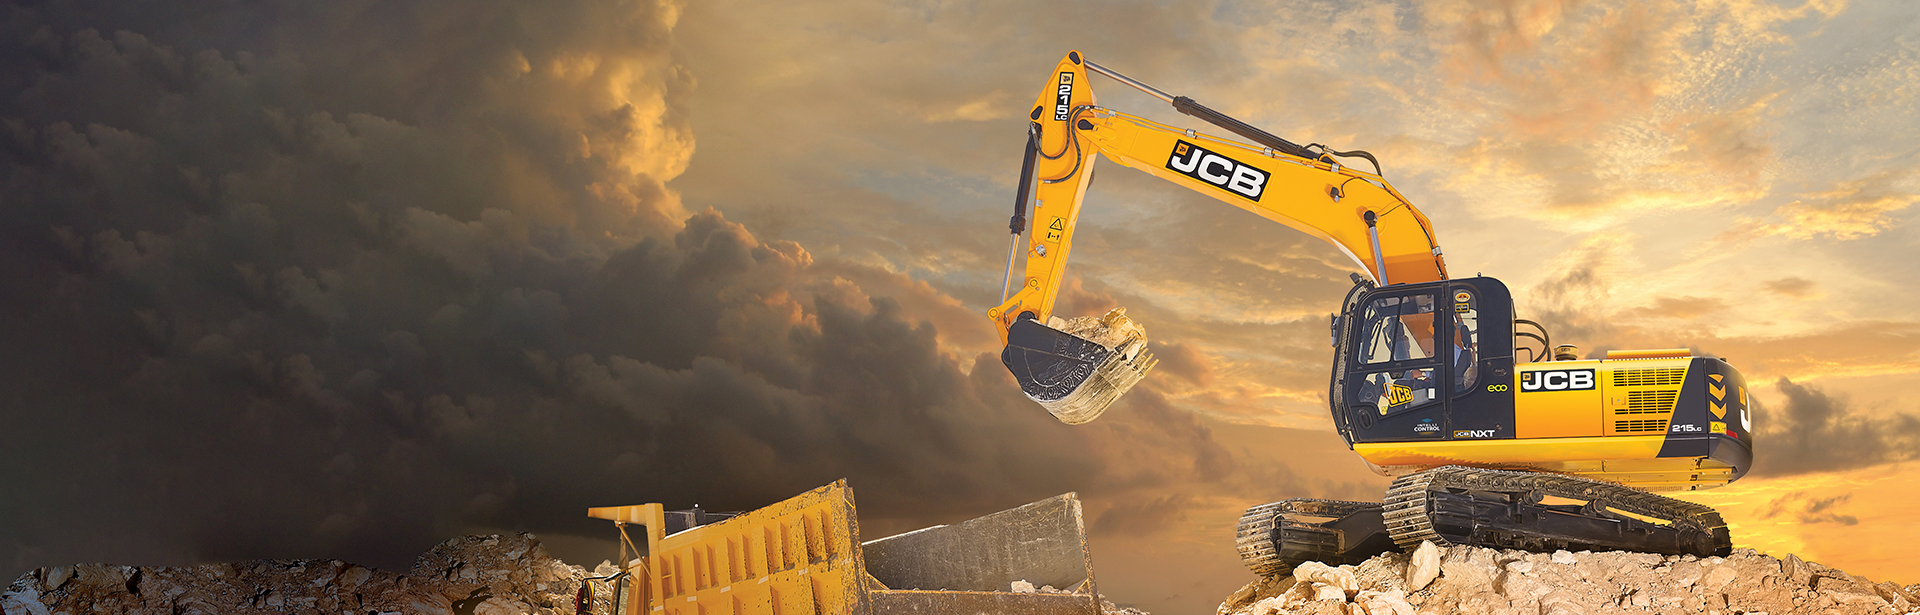 JCB Tracked Excavators Indore